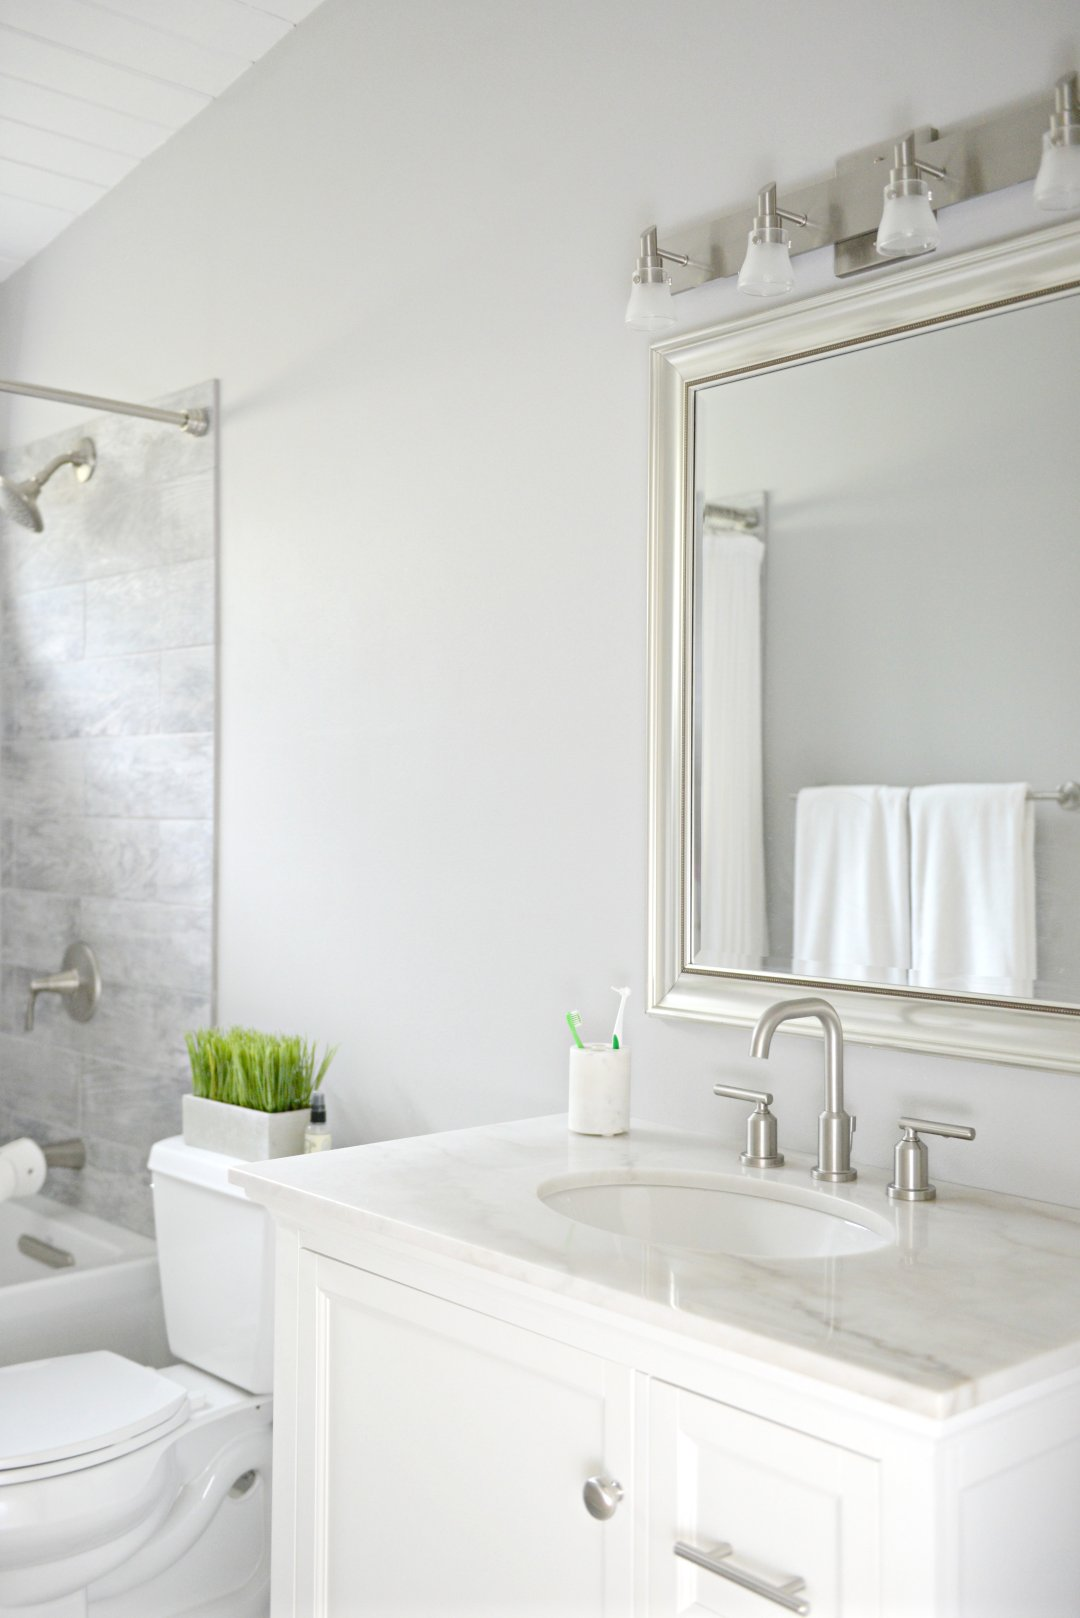 Bathroom update on a budget - easy budget friendly bathroom updates from Lowe's - Grey and white modern bathroom from Hello Splendid